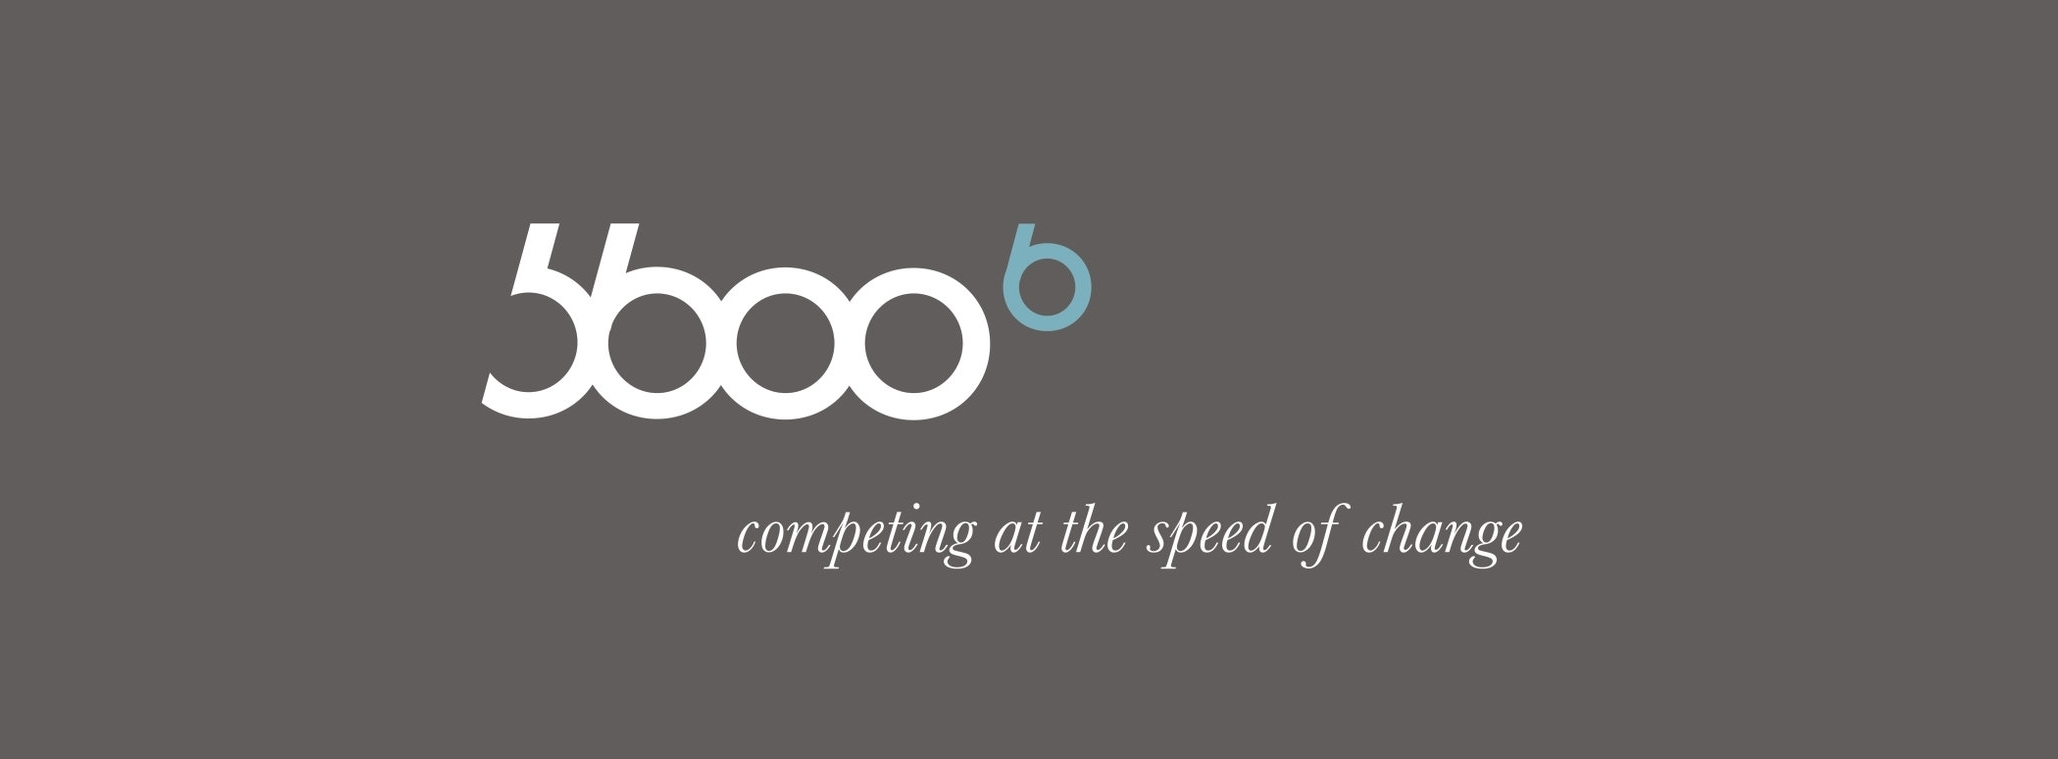 5600blue - competing at the speed of change